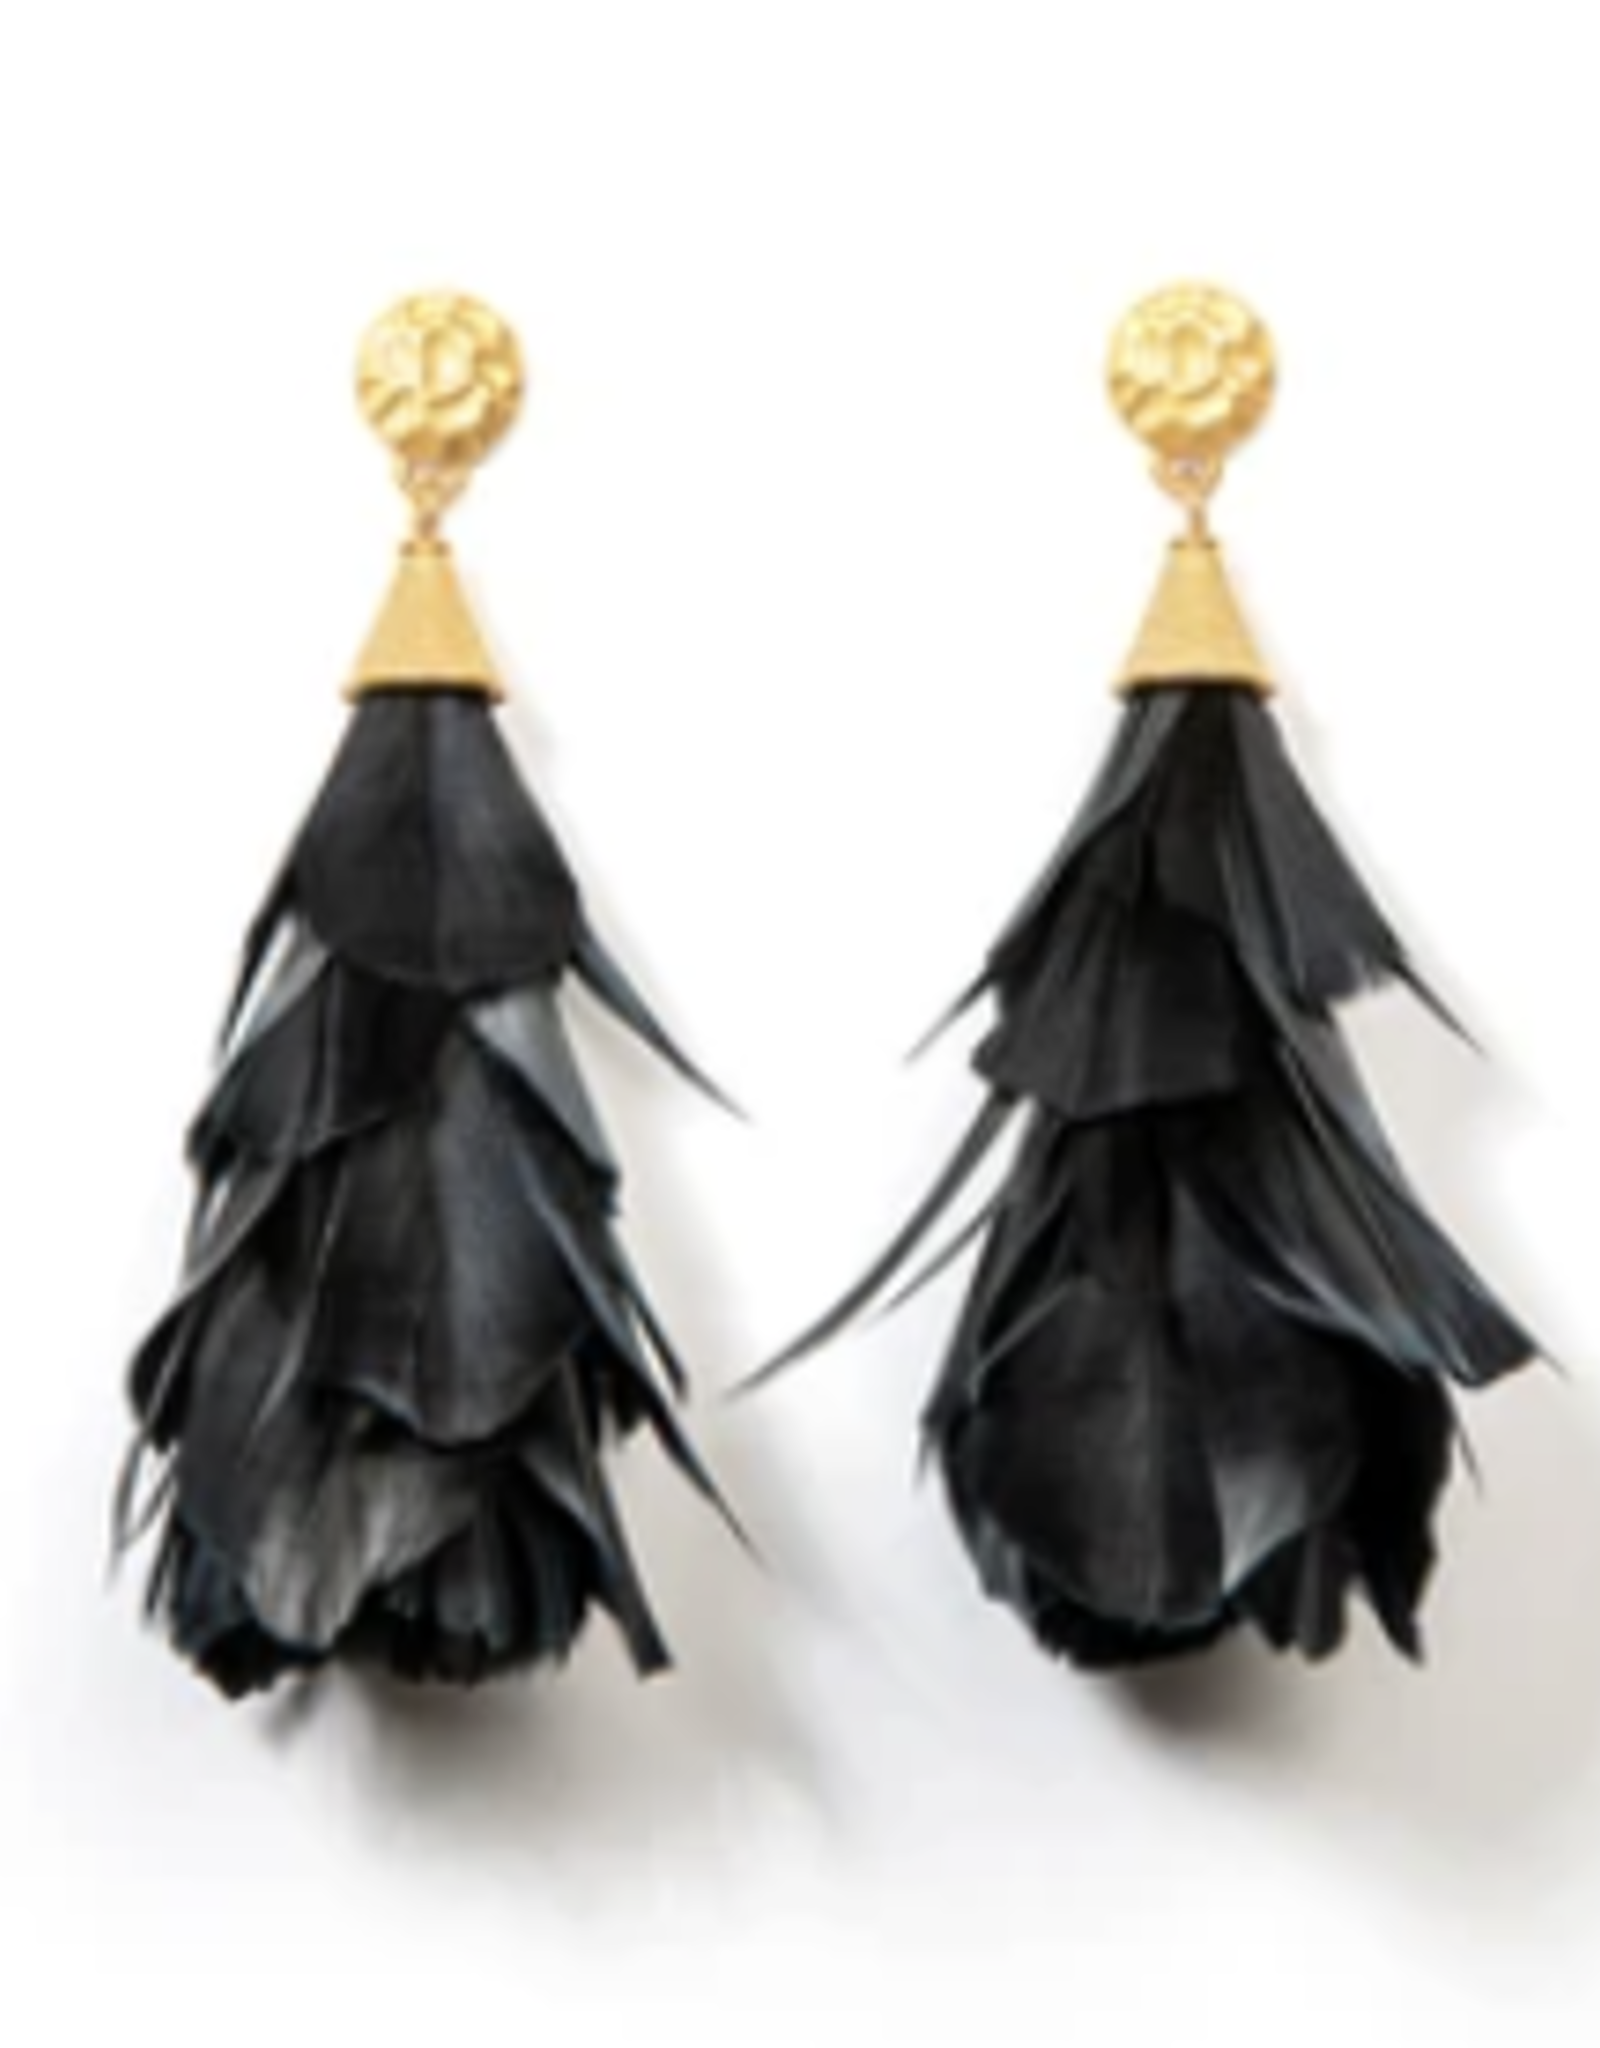 Brackish Parades with Gold Nugget Earrings - Goose Feathers